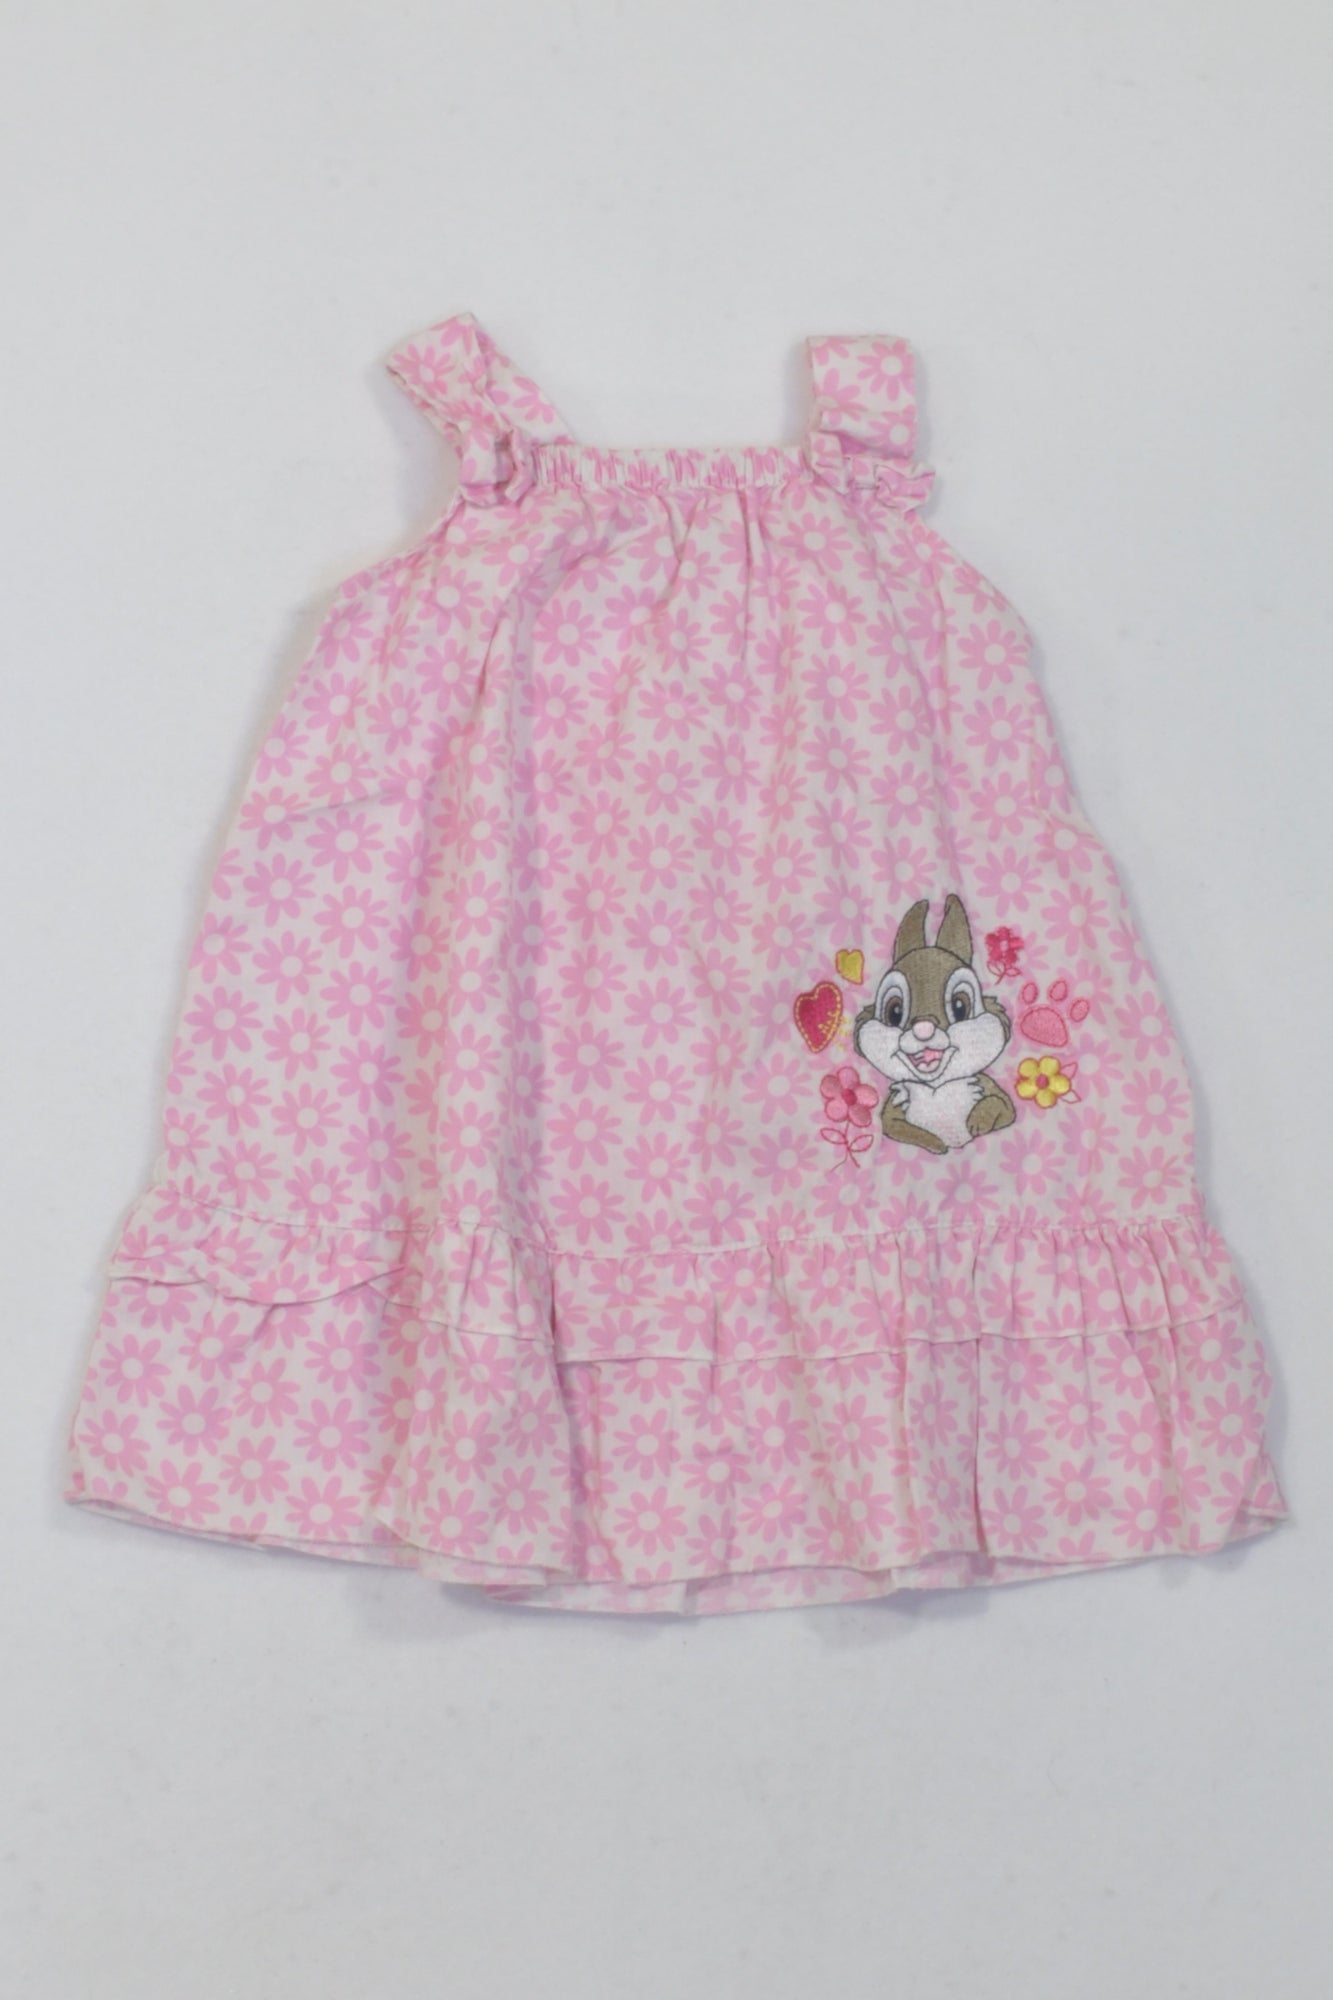 White & Pink Daisy Thumper Dress Girls 3 6 months – ce More